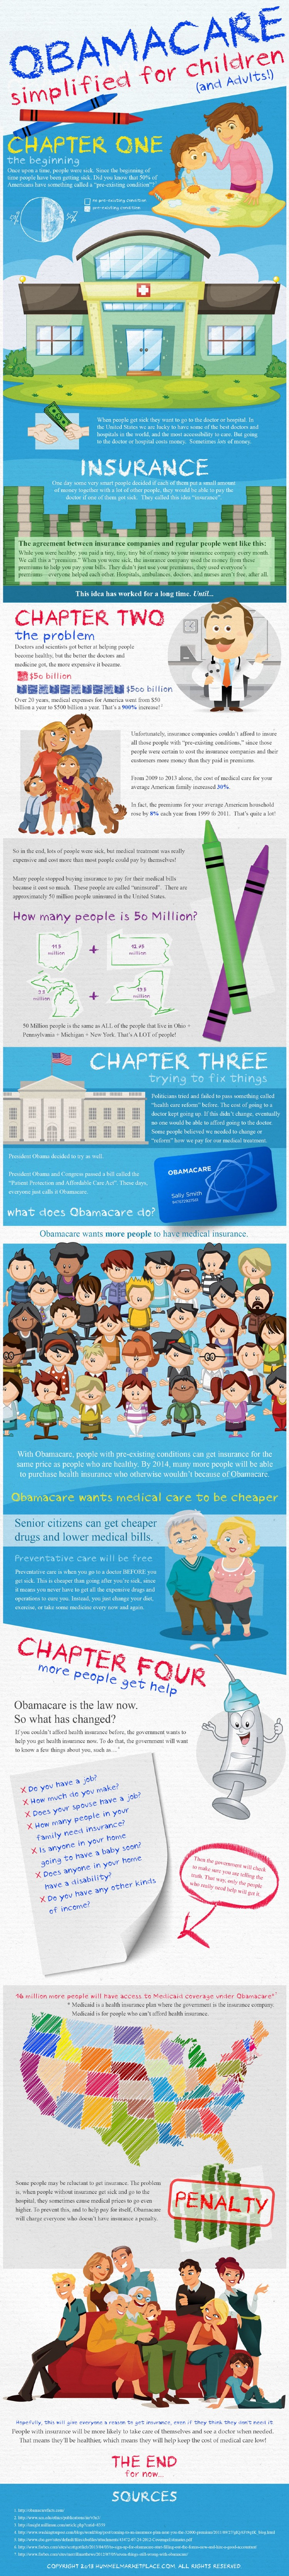 obamacare-simplified-for-children-and-adults_528a60d1f1043_w1500